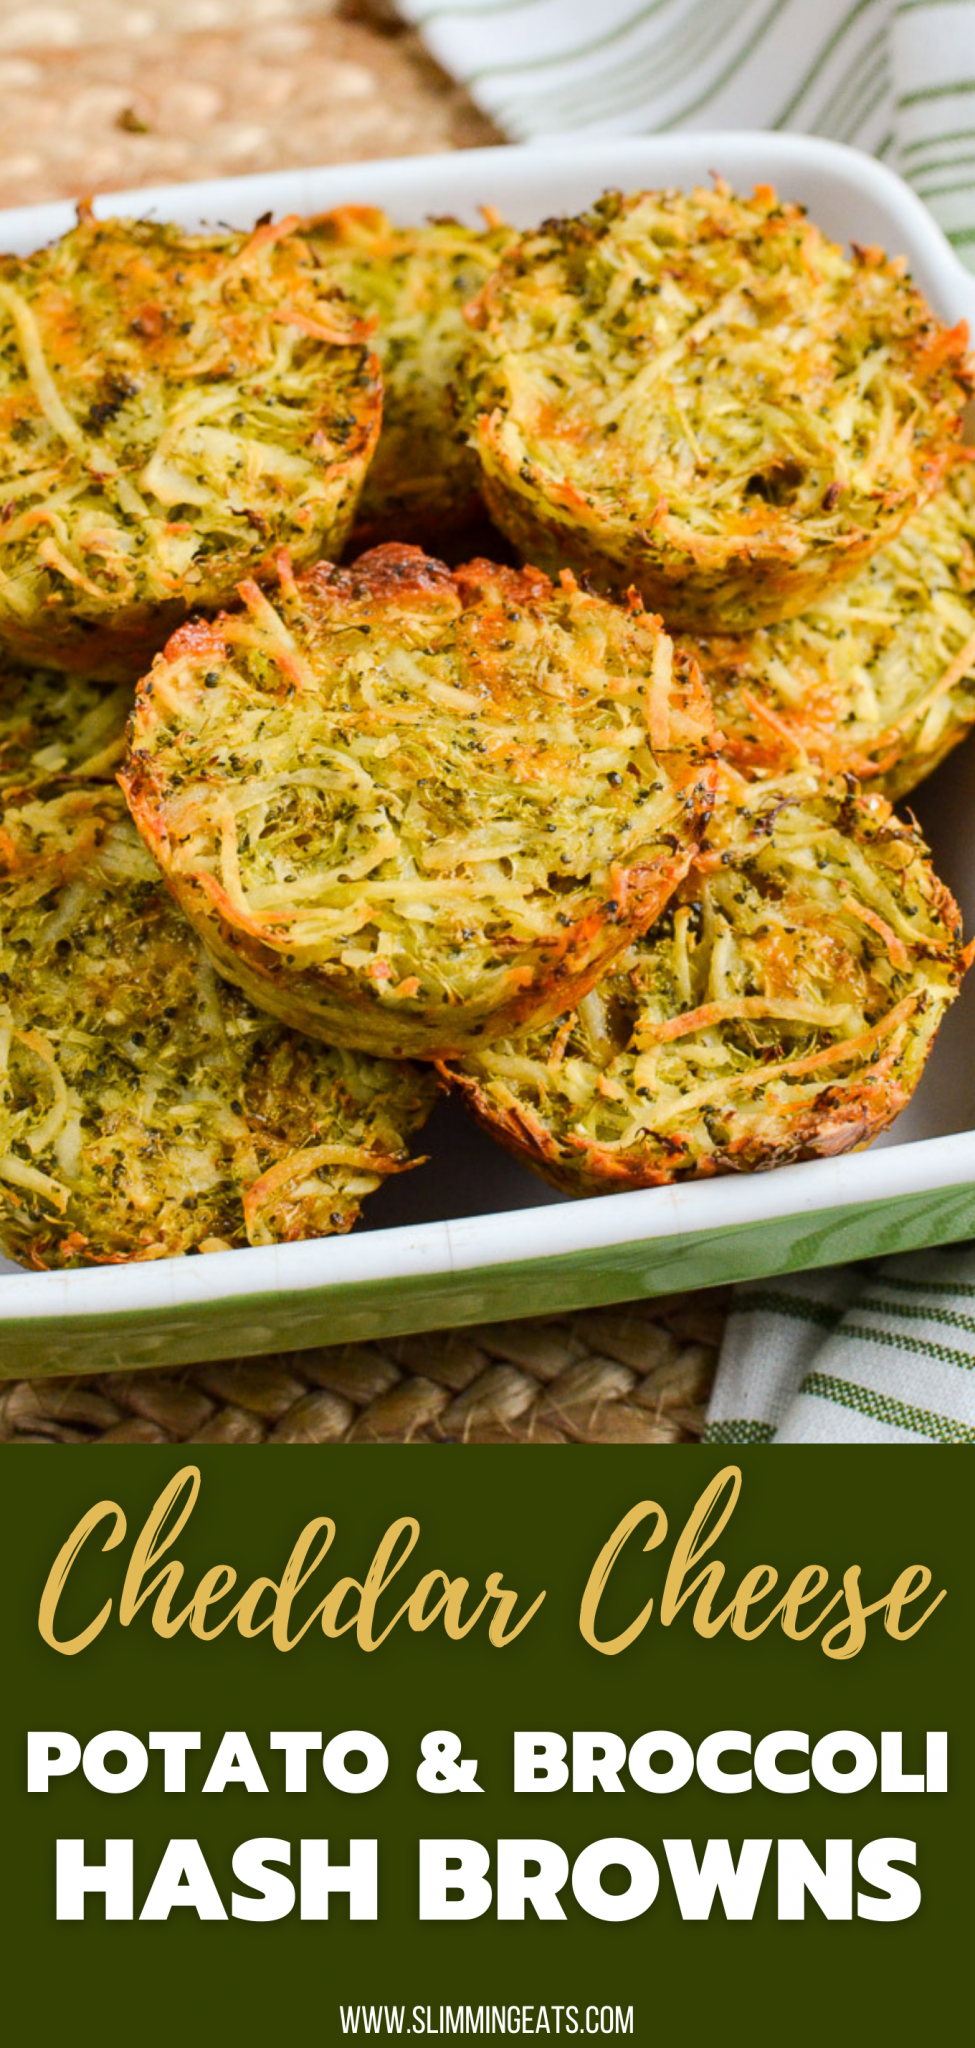 Broccoli Cheddar Hash Brown Muffins  in an oven dish with green and white striped napkin